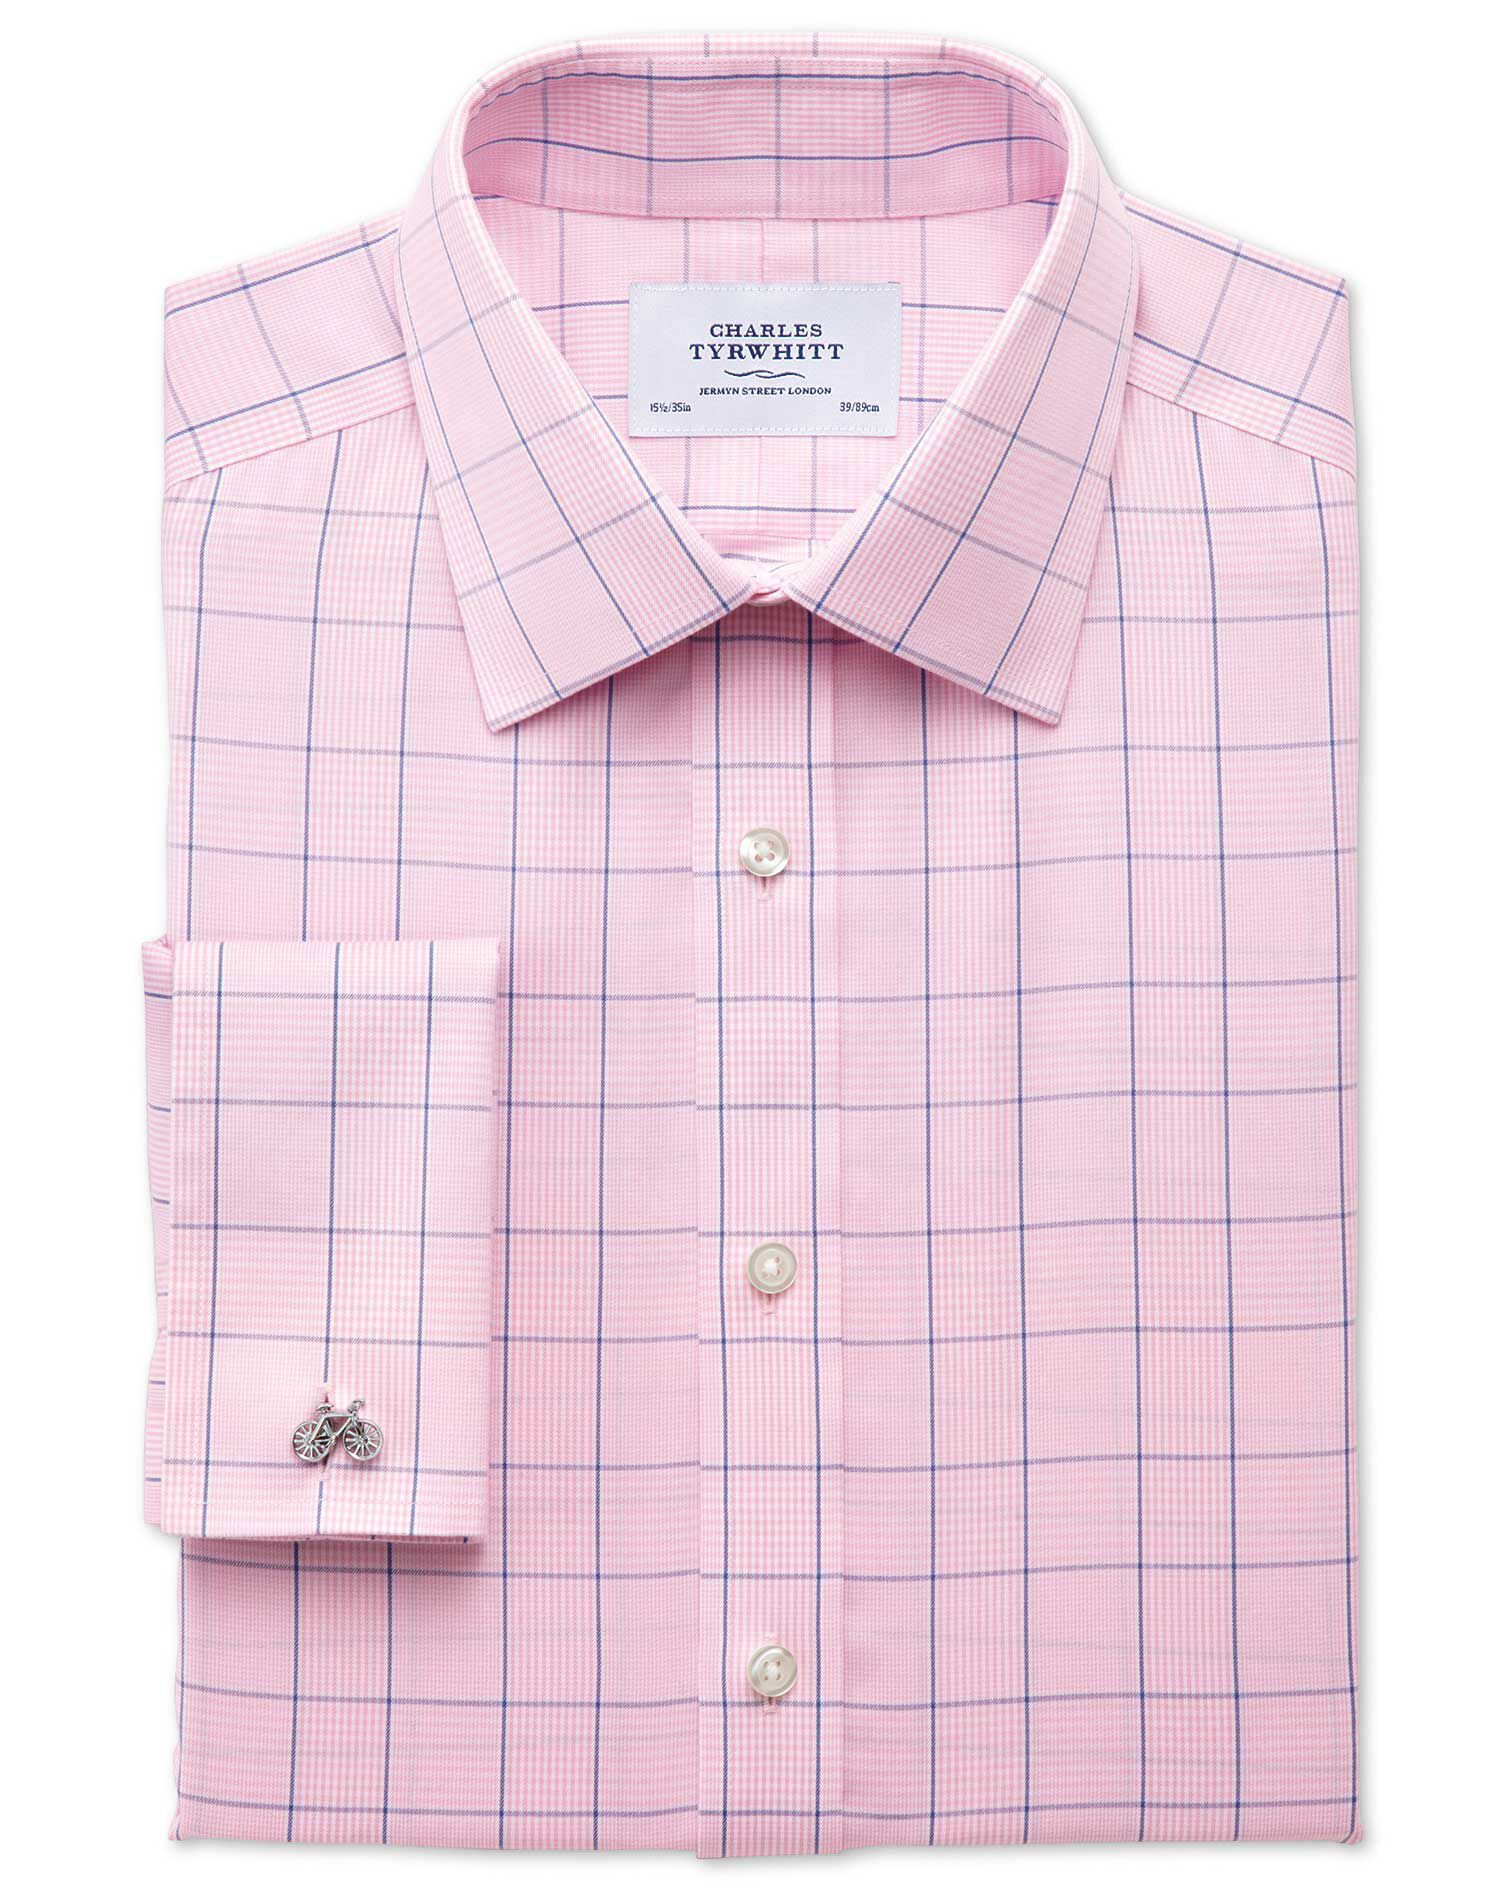 Slim Fit Non-Iron Prince Of Wales Check Pink and Blue Cotton Formal Shirt Single Cuff Size 16/36 by